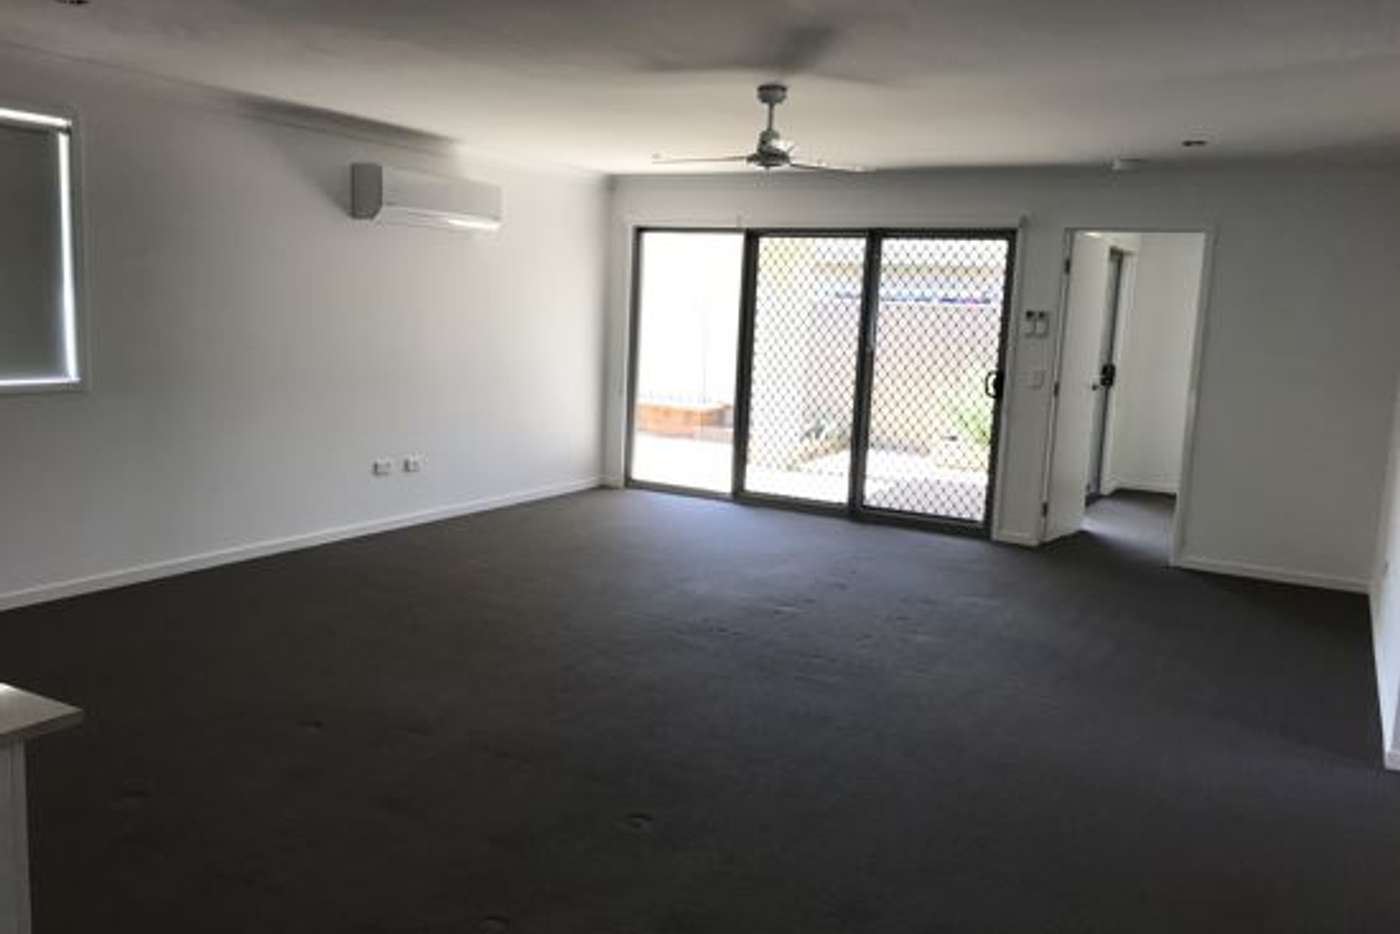 Seventh view of Homely house listing, 15 Redondo St, Ningi QLD 4511